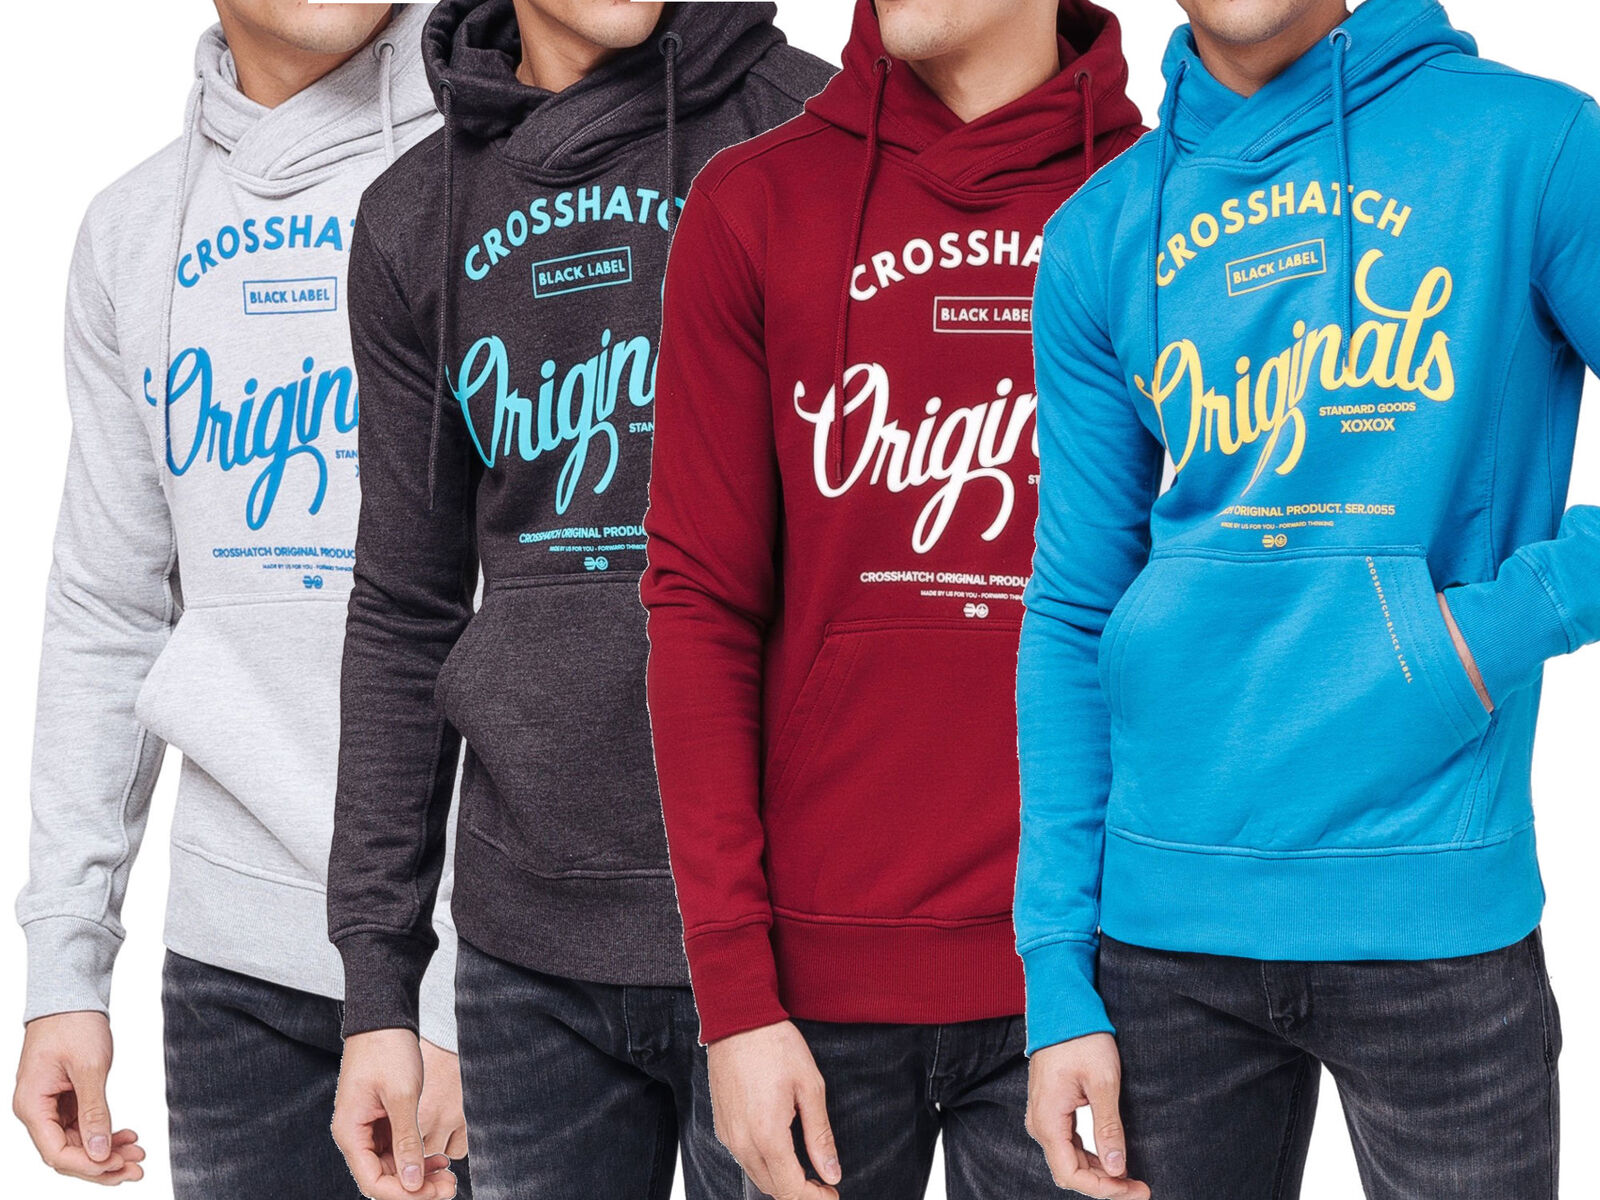 CROSSHATCH Herren Sweatshirt Pullover GILGURRY CH ORIGINALS PRINTS Hoodie Kapuze